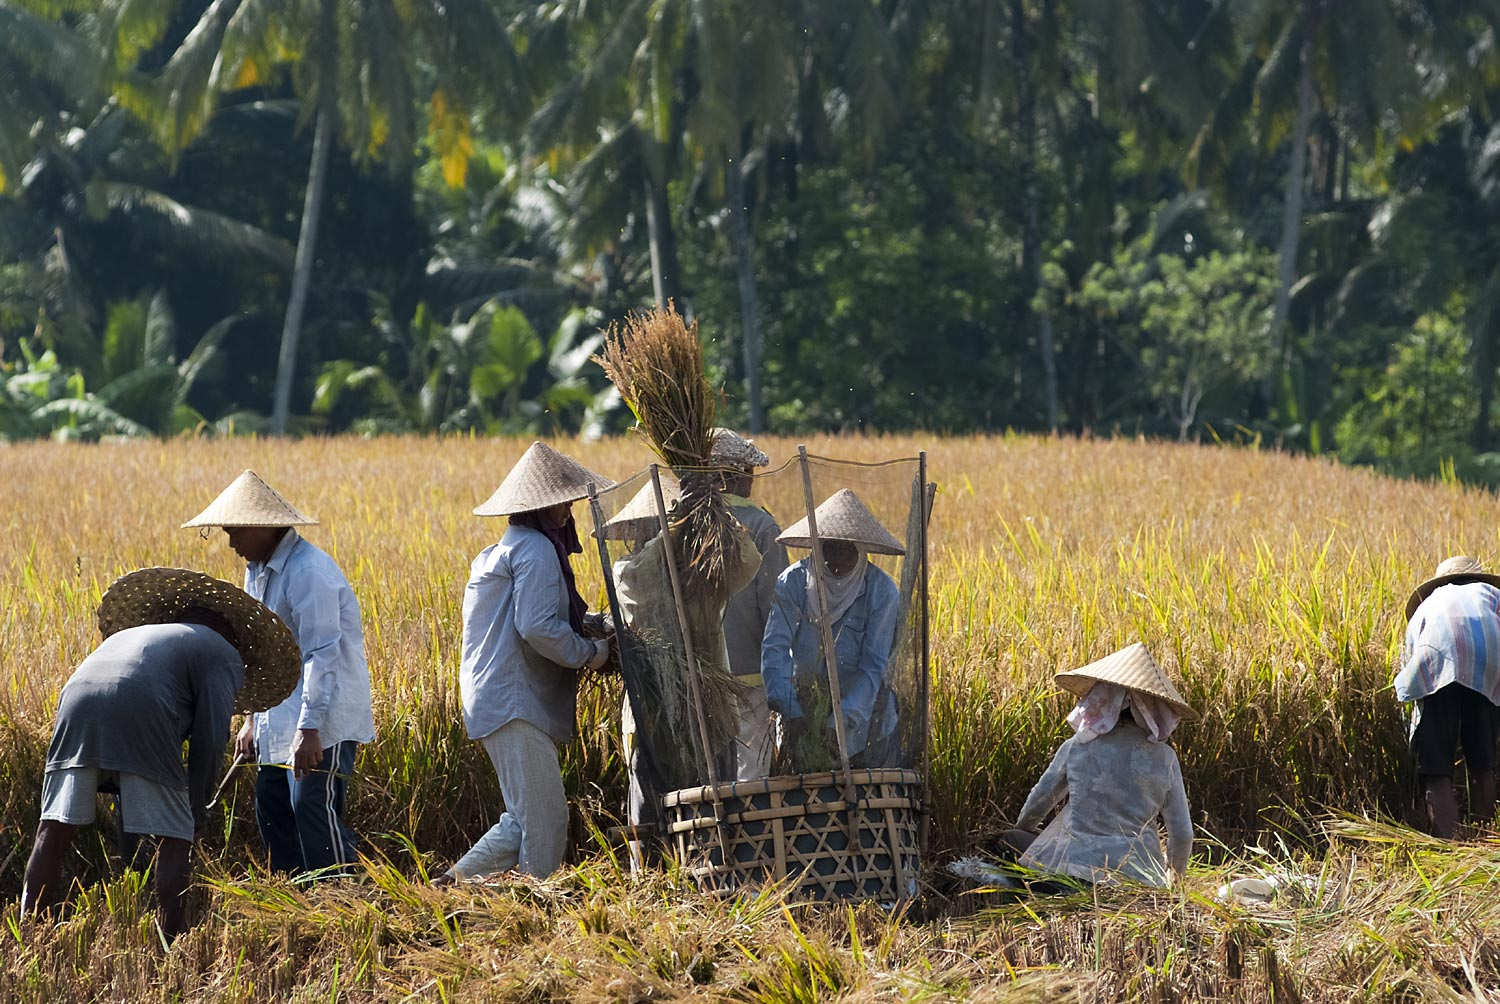 Rice-Threshing-62687981.jpg